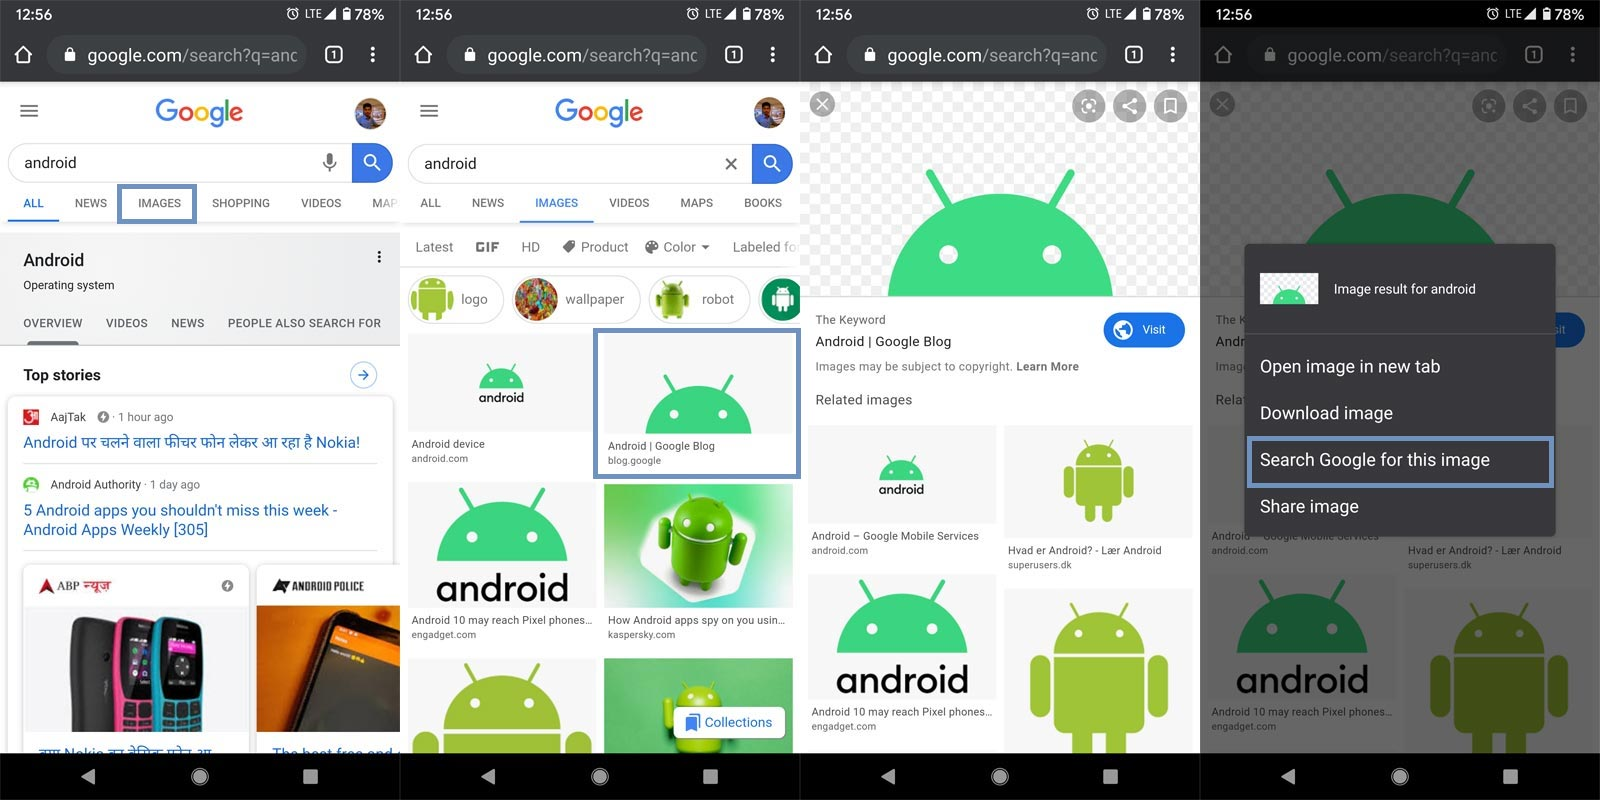 Android Google Reverse Image Search in Chrome Browser